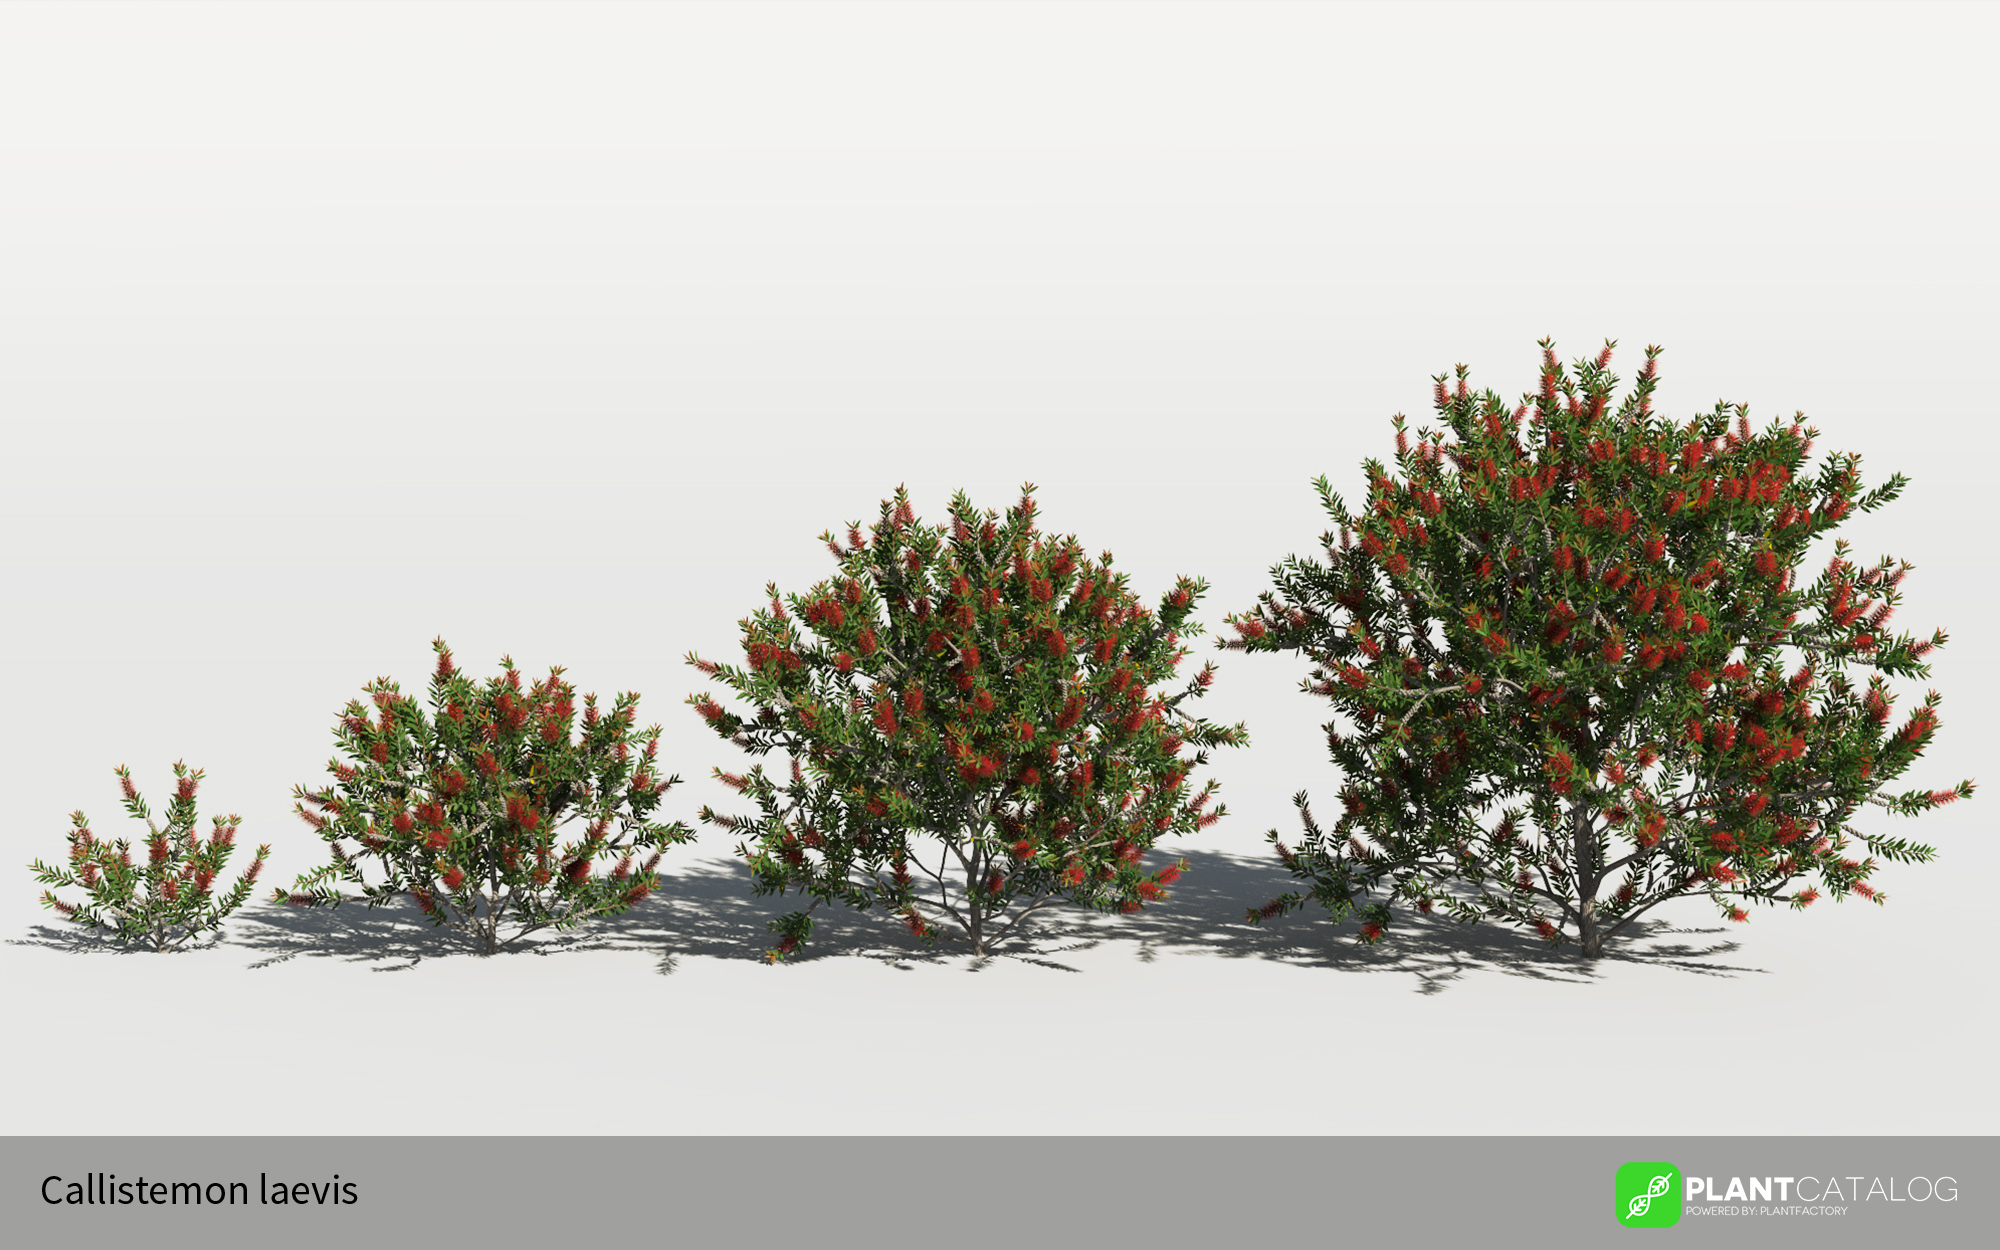 3D model of the Bottlebrush - Callistemon laevis - from the PlantCatalog, rendered in VUE